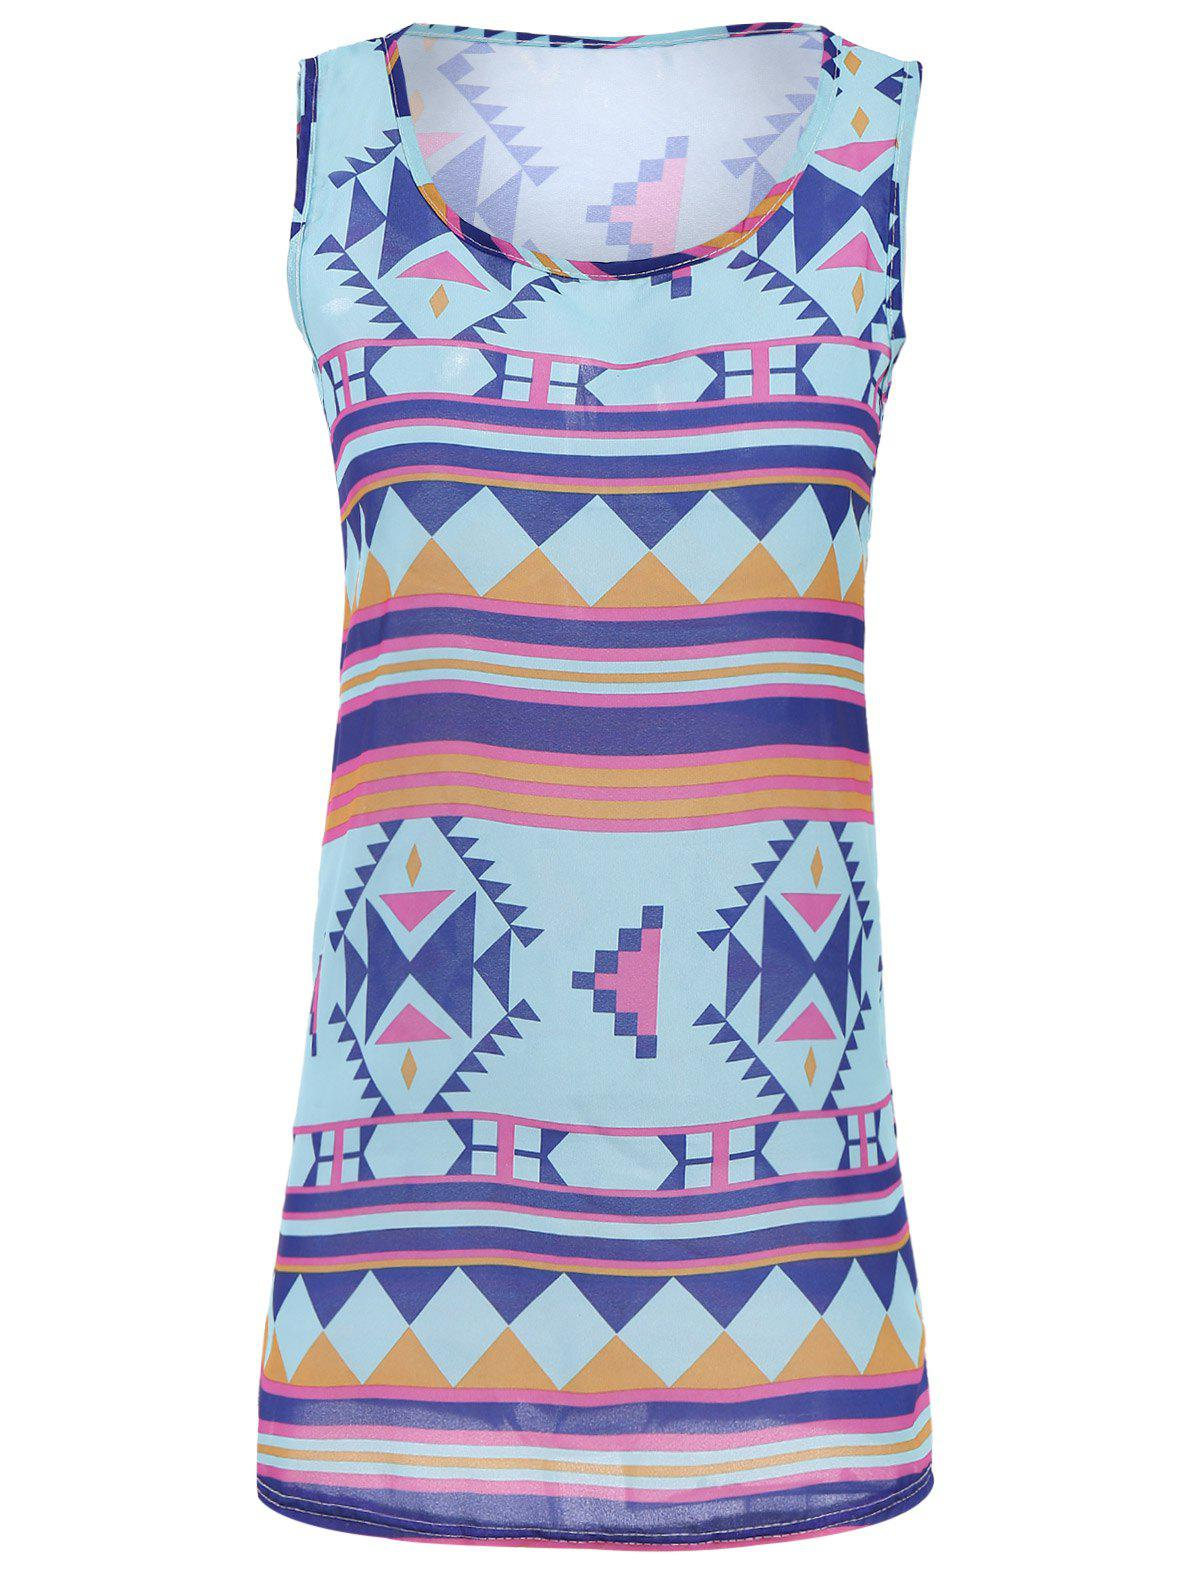 New Stylish Scoop Neck Sleeveless Geometric Dress For Women